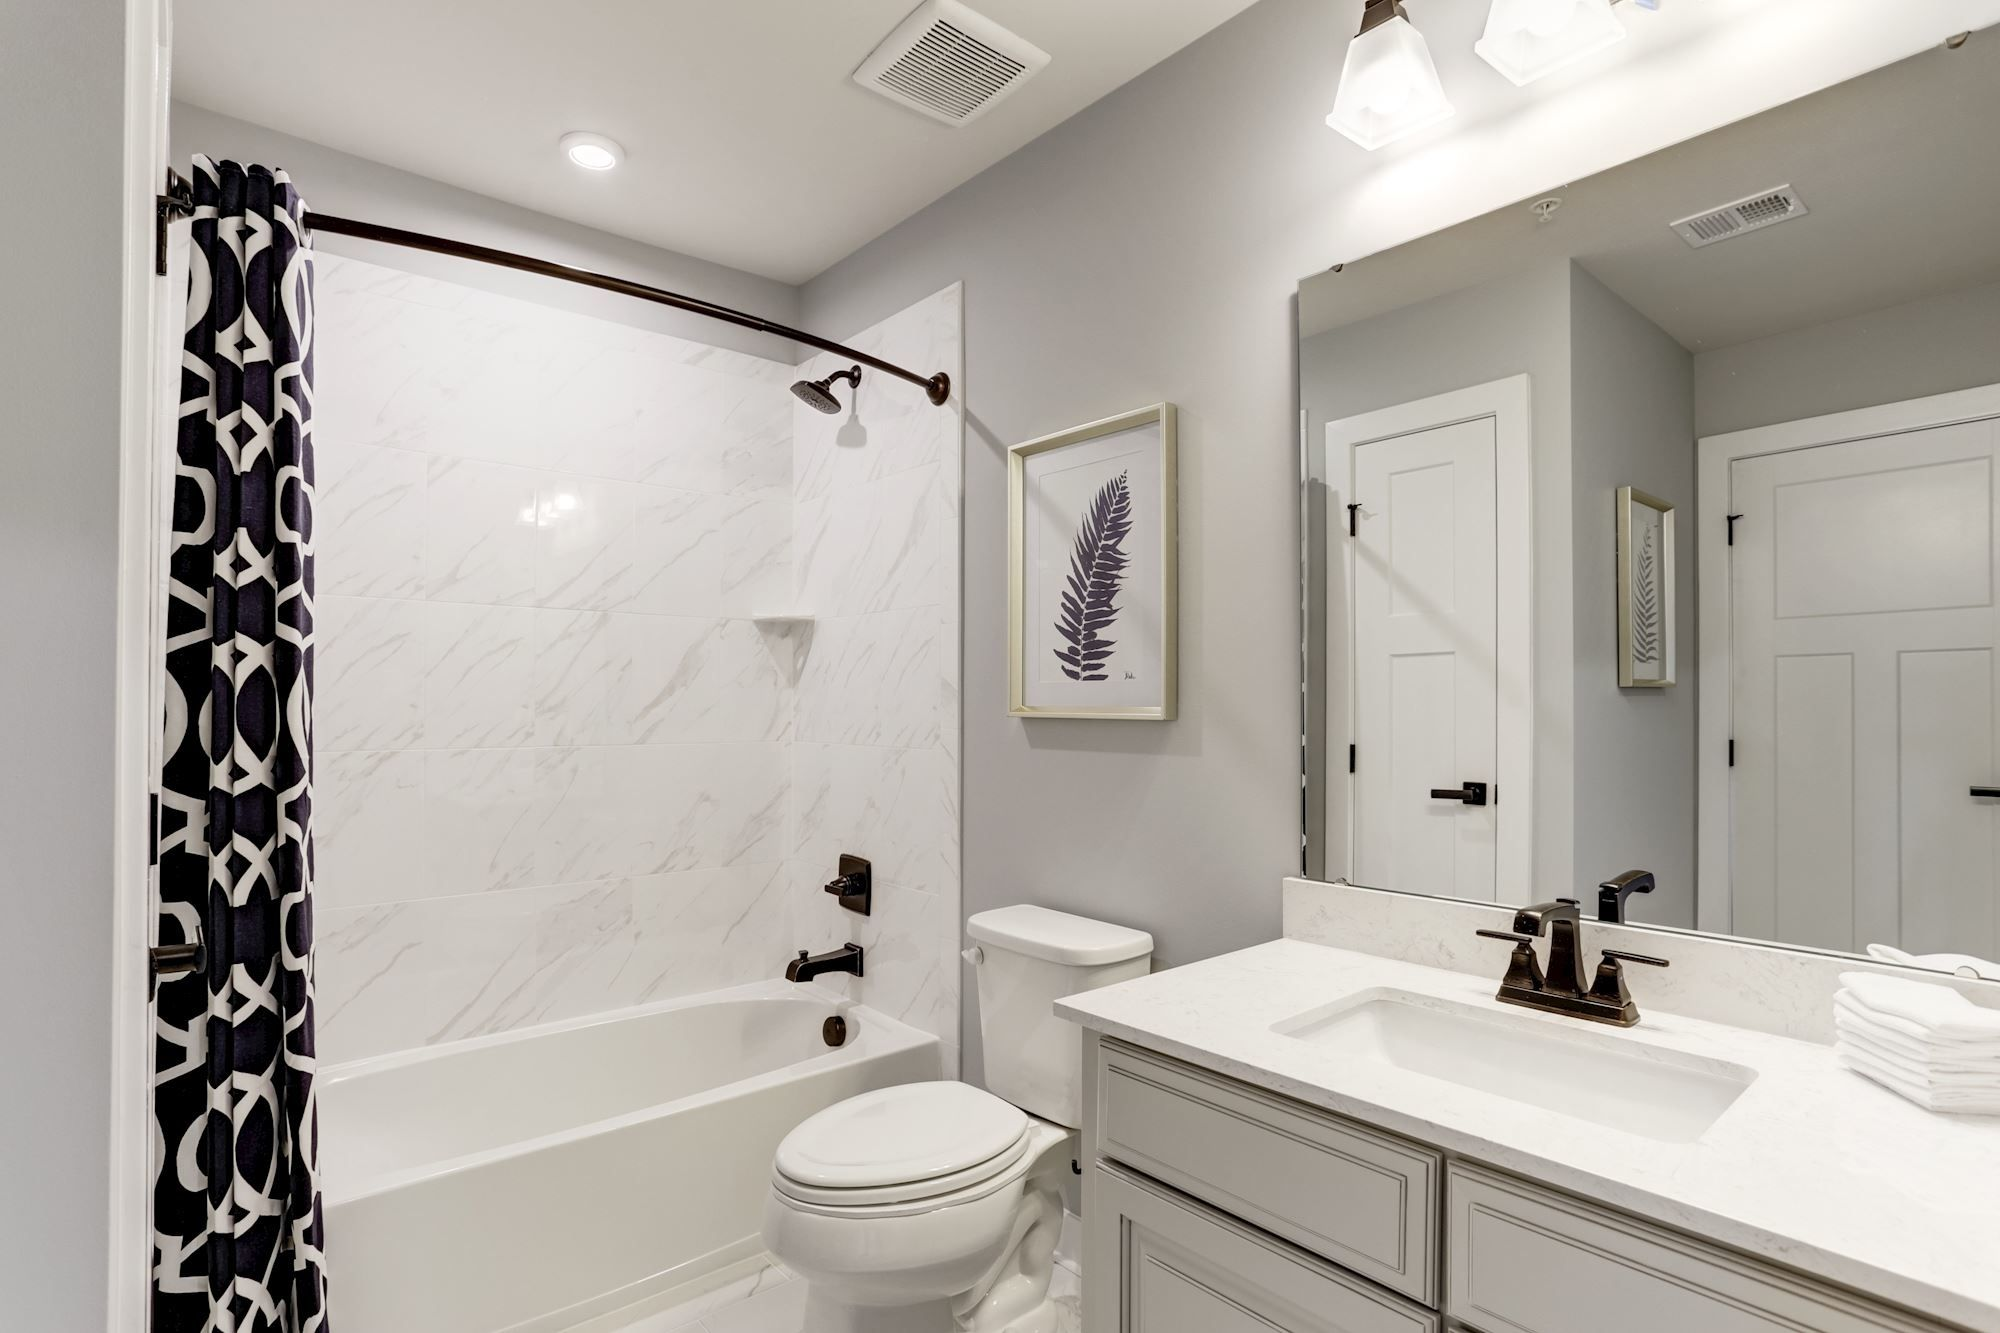 Bathroom featured in the Palladio Ranch By Ryan Homes in Sussex, DE